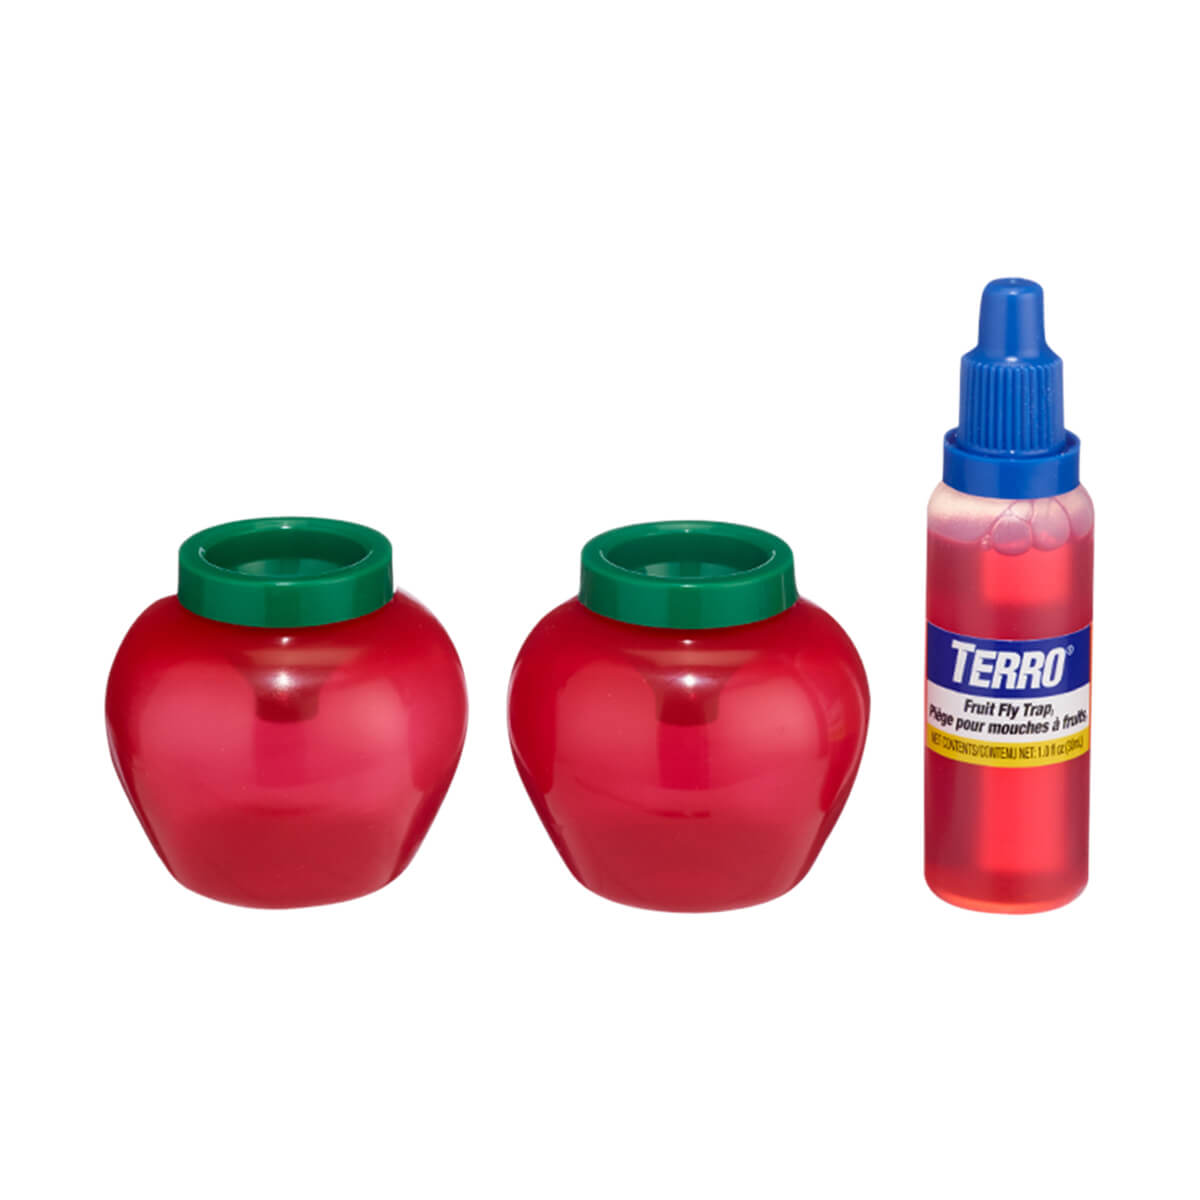 TERRO® Fruit Fly Trap 2-Pack